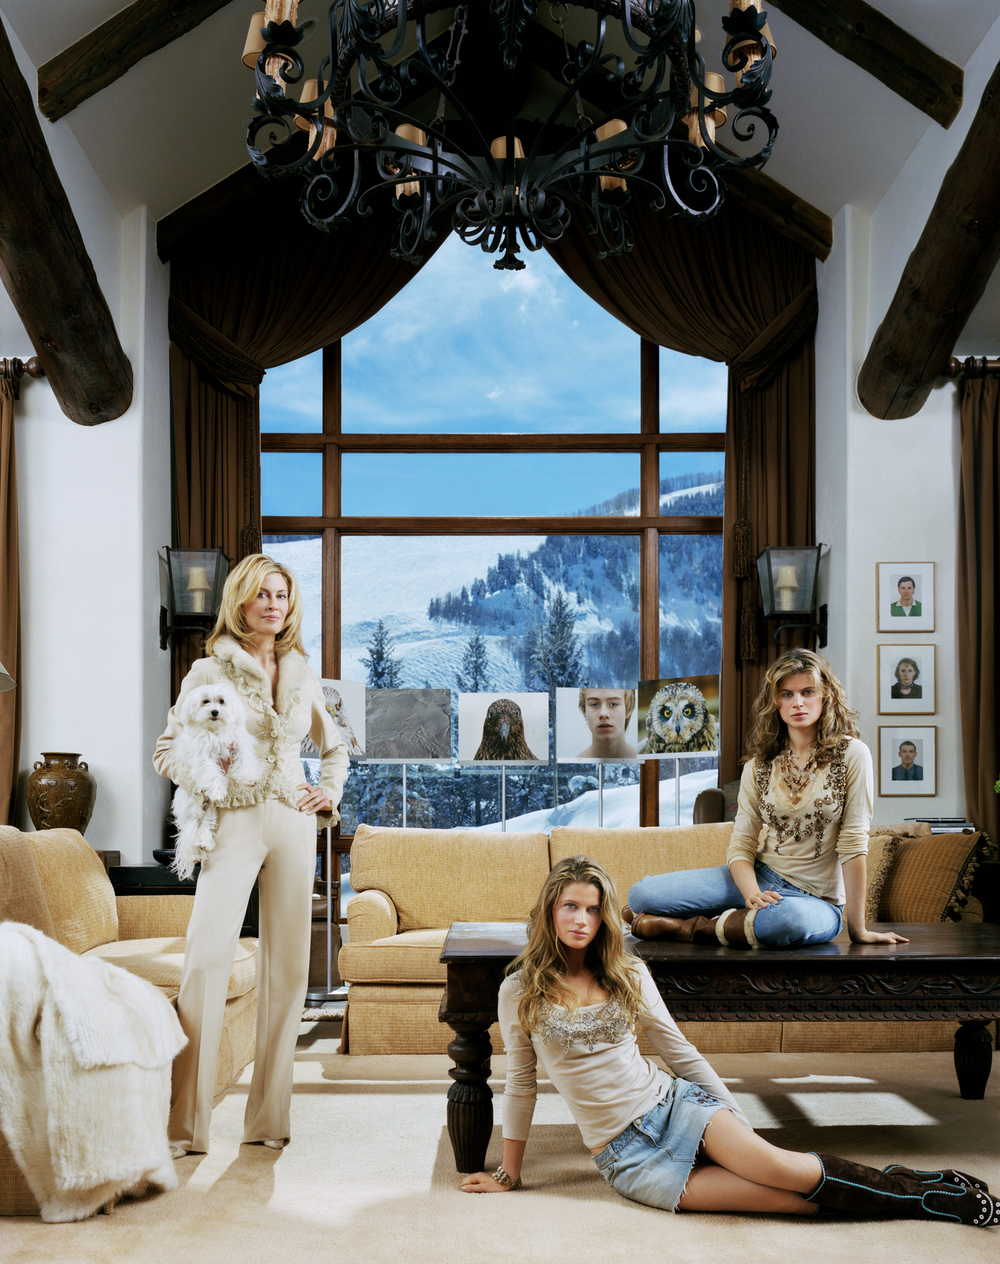 Jennifer Stockman of the Guggenheim Foundation with daughters Victoria and Rachel at their home in Aspen, CO